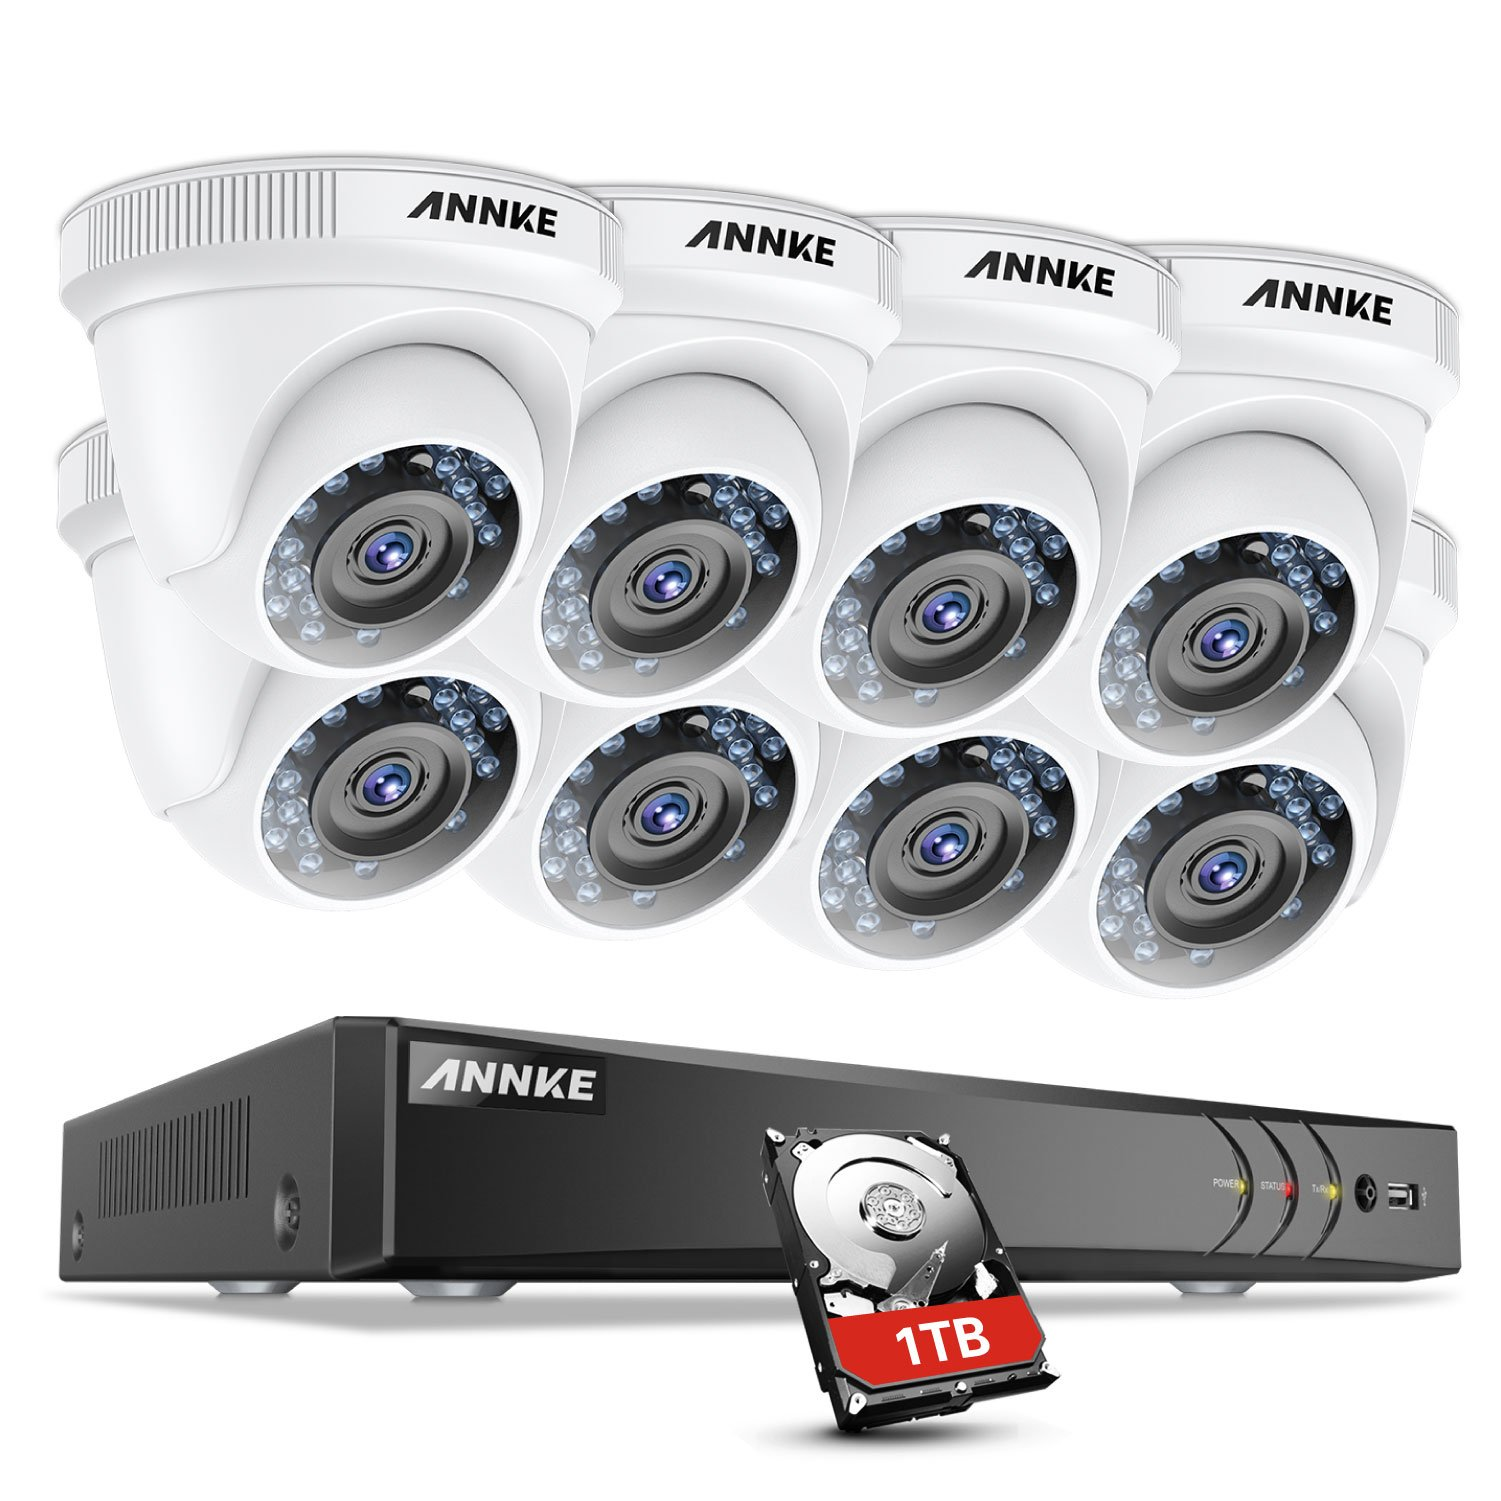 ANNKE 8-Channel 3MP(1920x1536@18fps) Security DVR Recorder with 1TB HDD and (8) HD 1920TVL 1080P CCTV Dome Cameras, Remote Access and Motion Detection by ANNKE